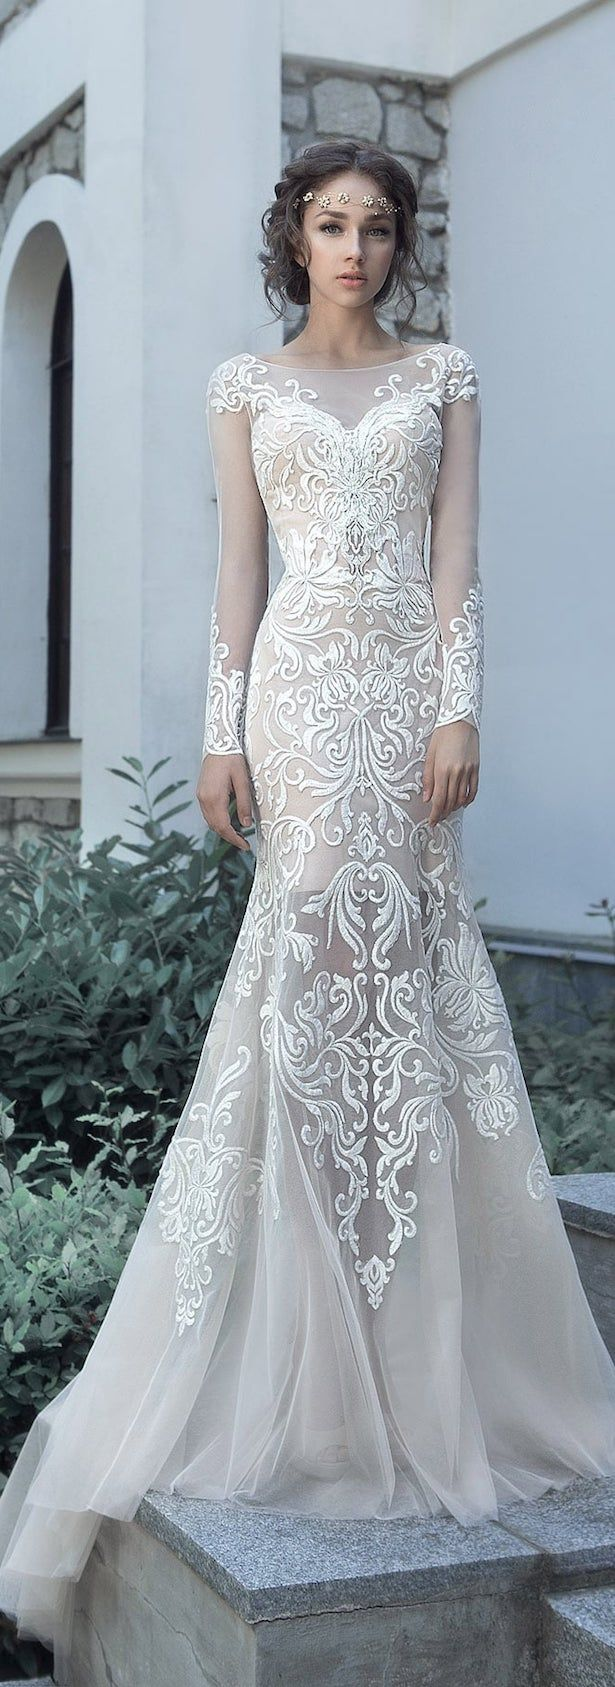 long sleeved 34 length sleeve wedding gown inspira classy wedding dresses Milva Wedding Dresses Sunrise Collection